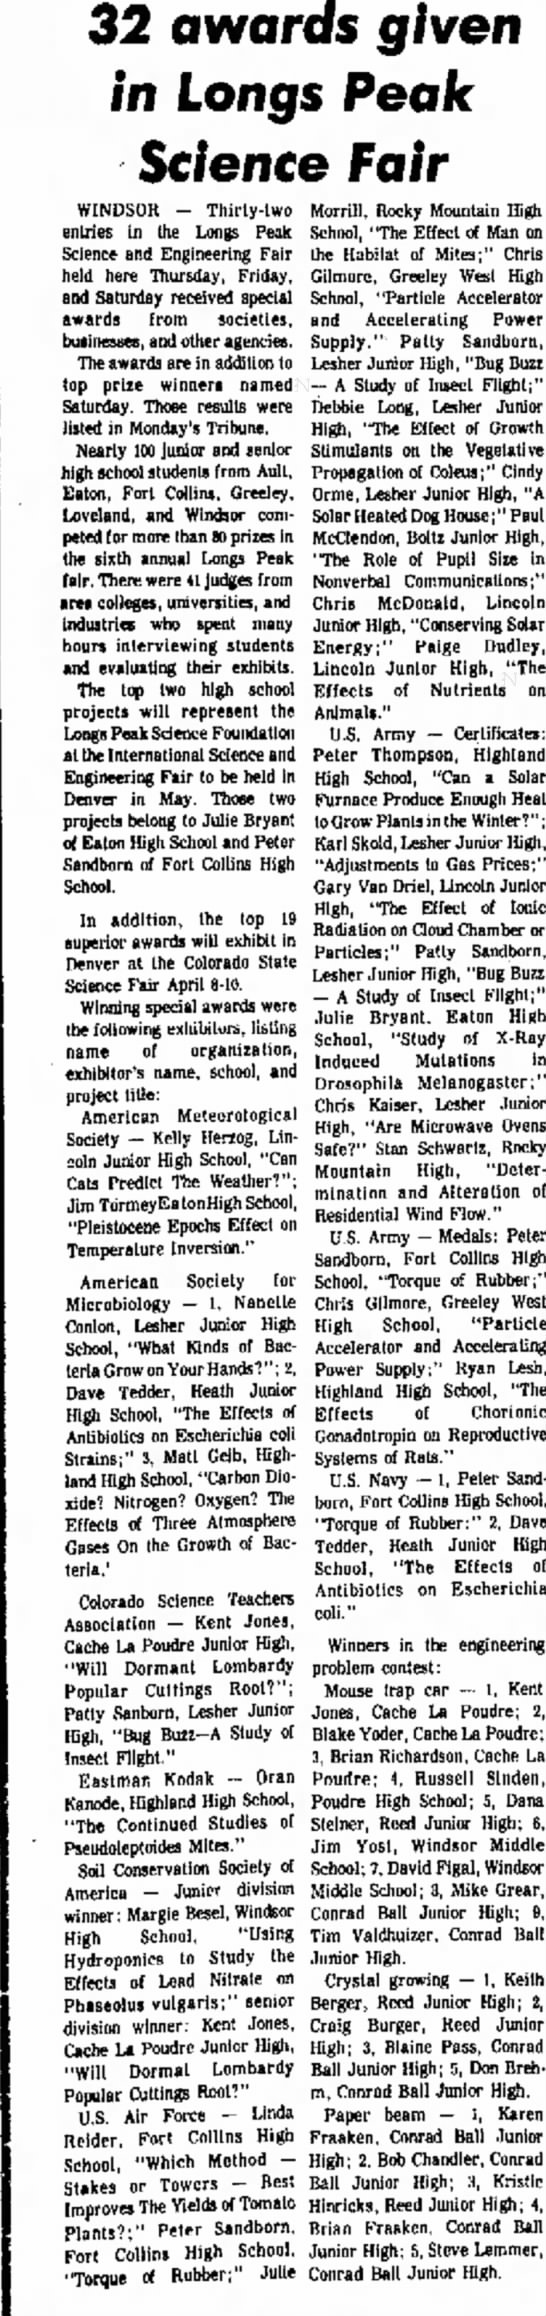 Blake Yoder March 10th, 1976 Greeley Daily Tribune - 32 awards o/ven 9* in Longs Peak Science Fair...